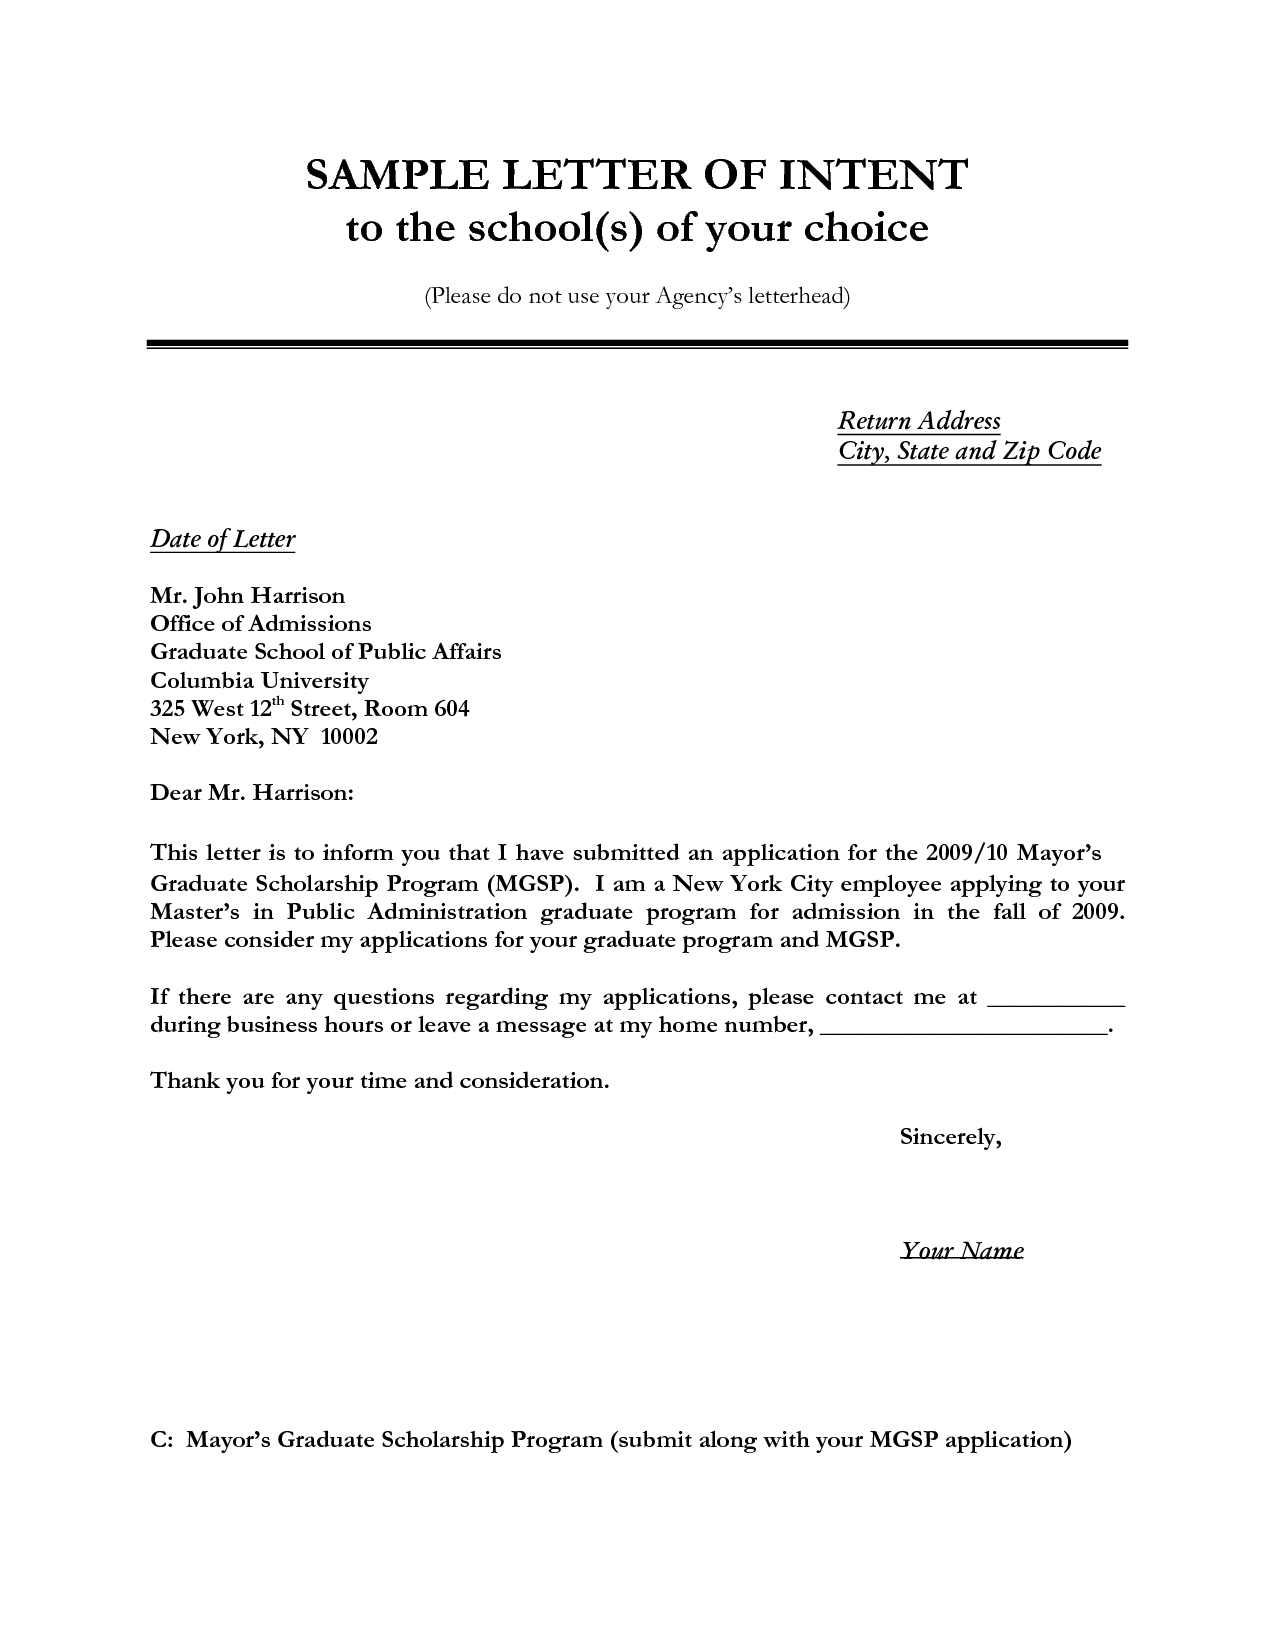 Letter to Seller From Buyer Template - Letter Of Intent Sample